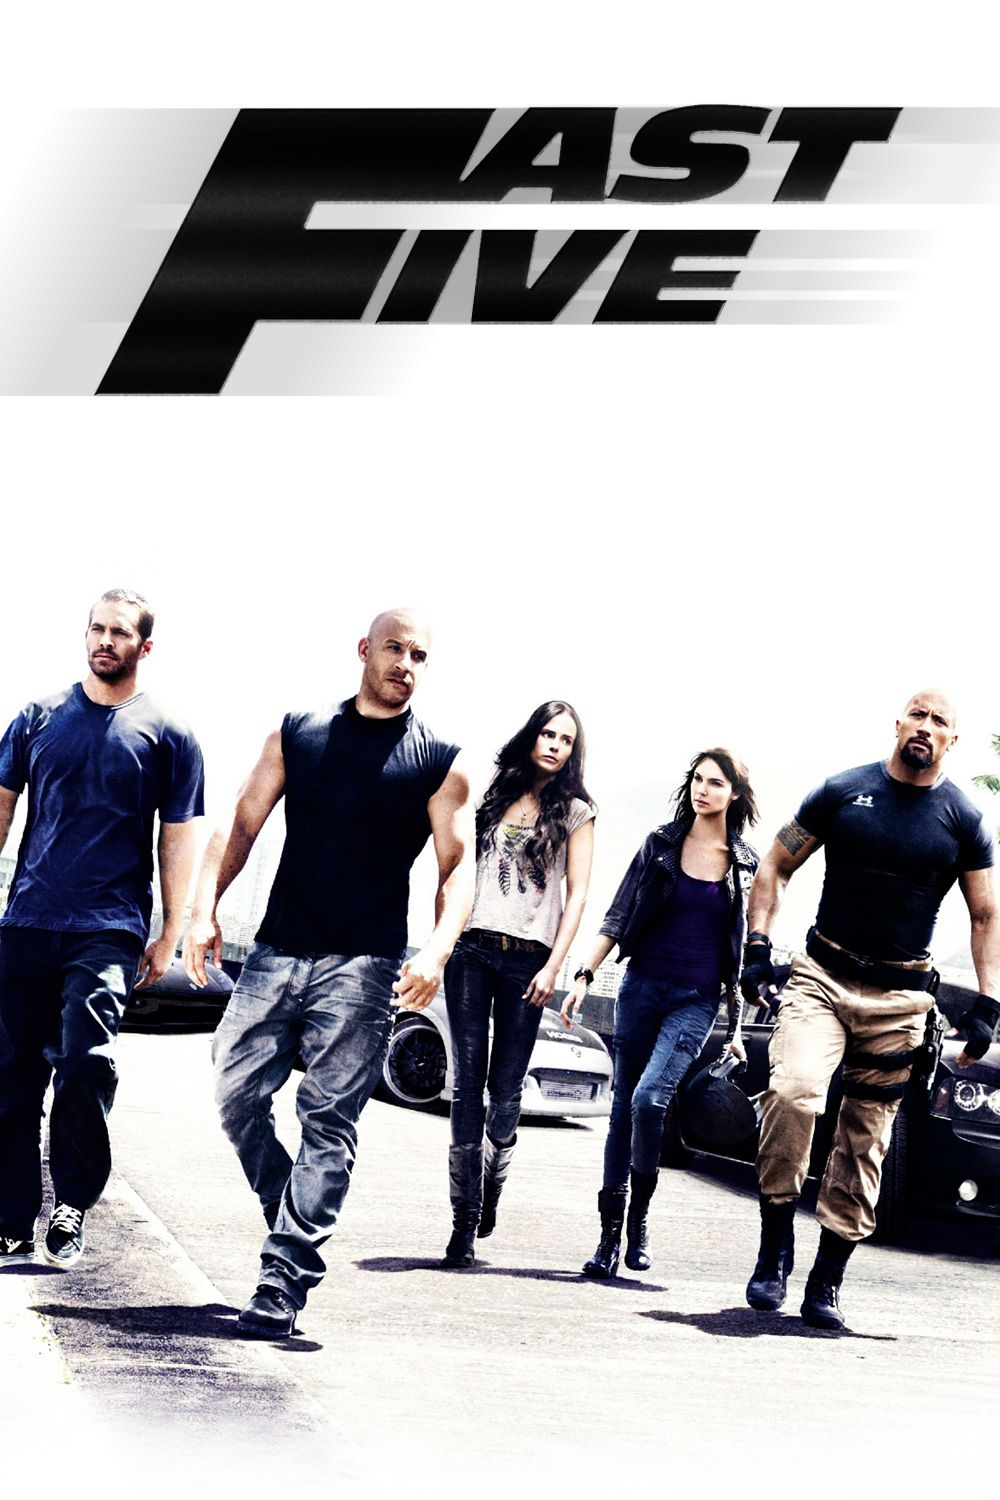 The Fast And The Furious 5 Stream